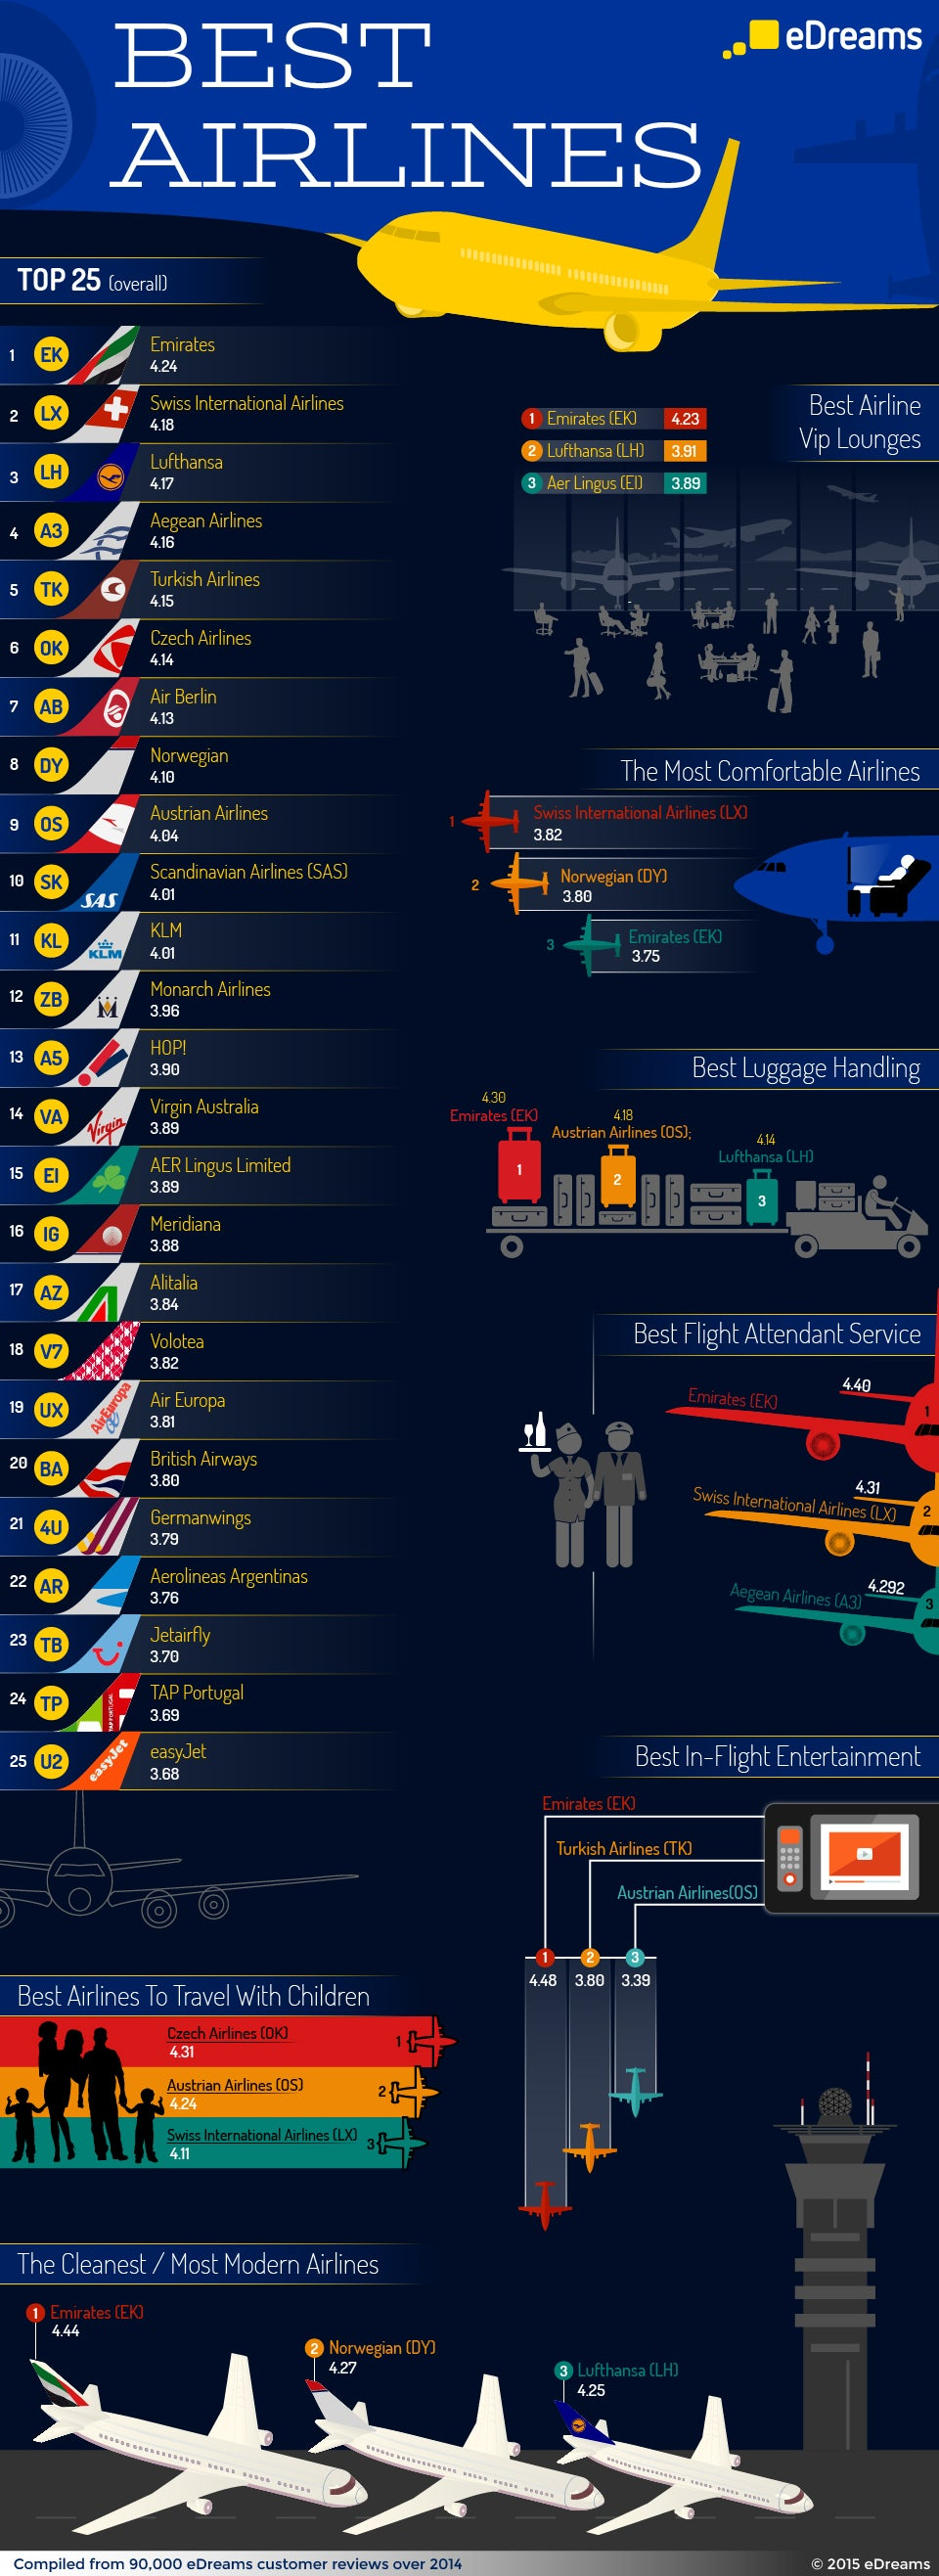 eDreams Best Airlines Infographic 2014